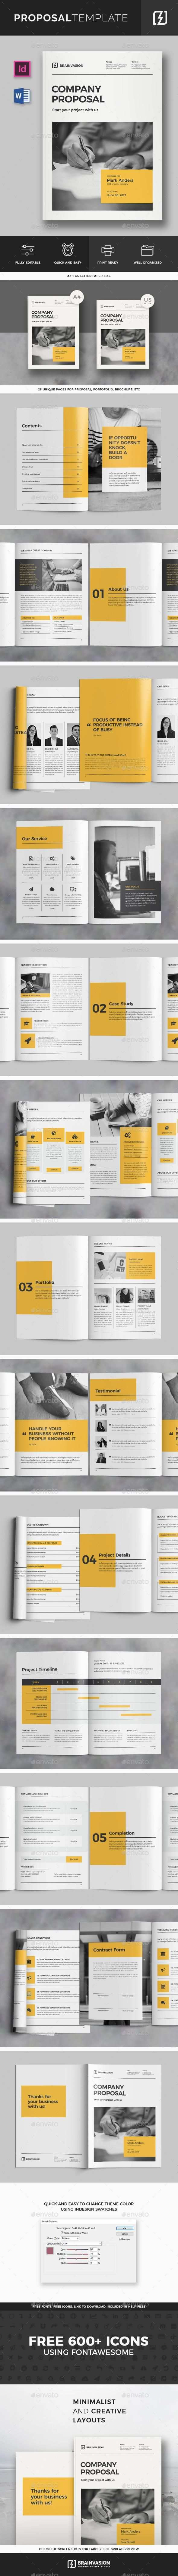 Proposal Template Vol 02 Proposal Design Proposal Templates Corporate Logo Design Inspiration